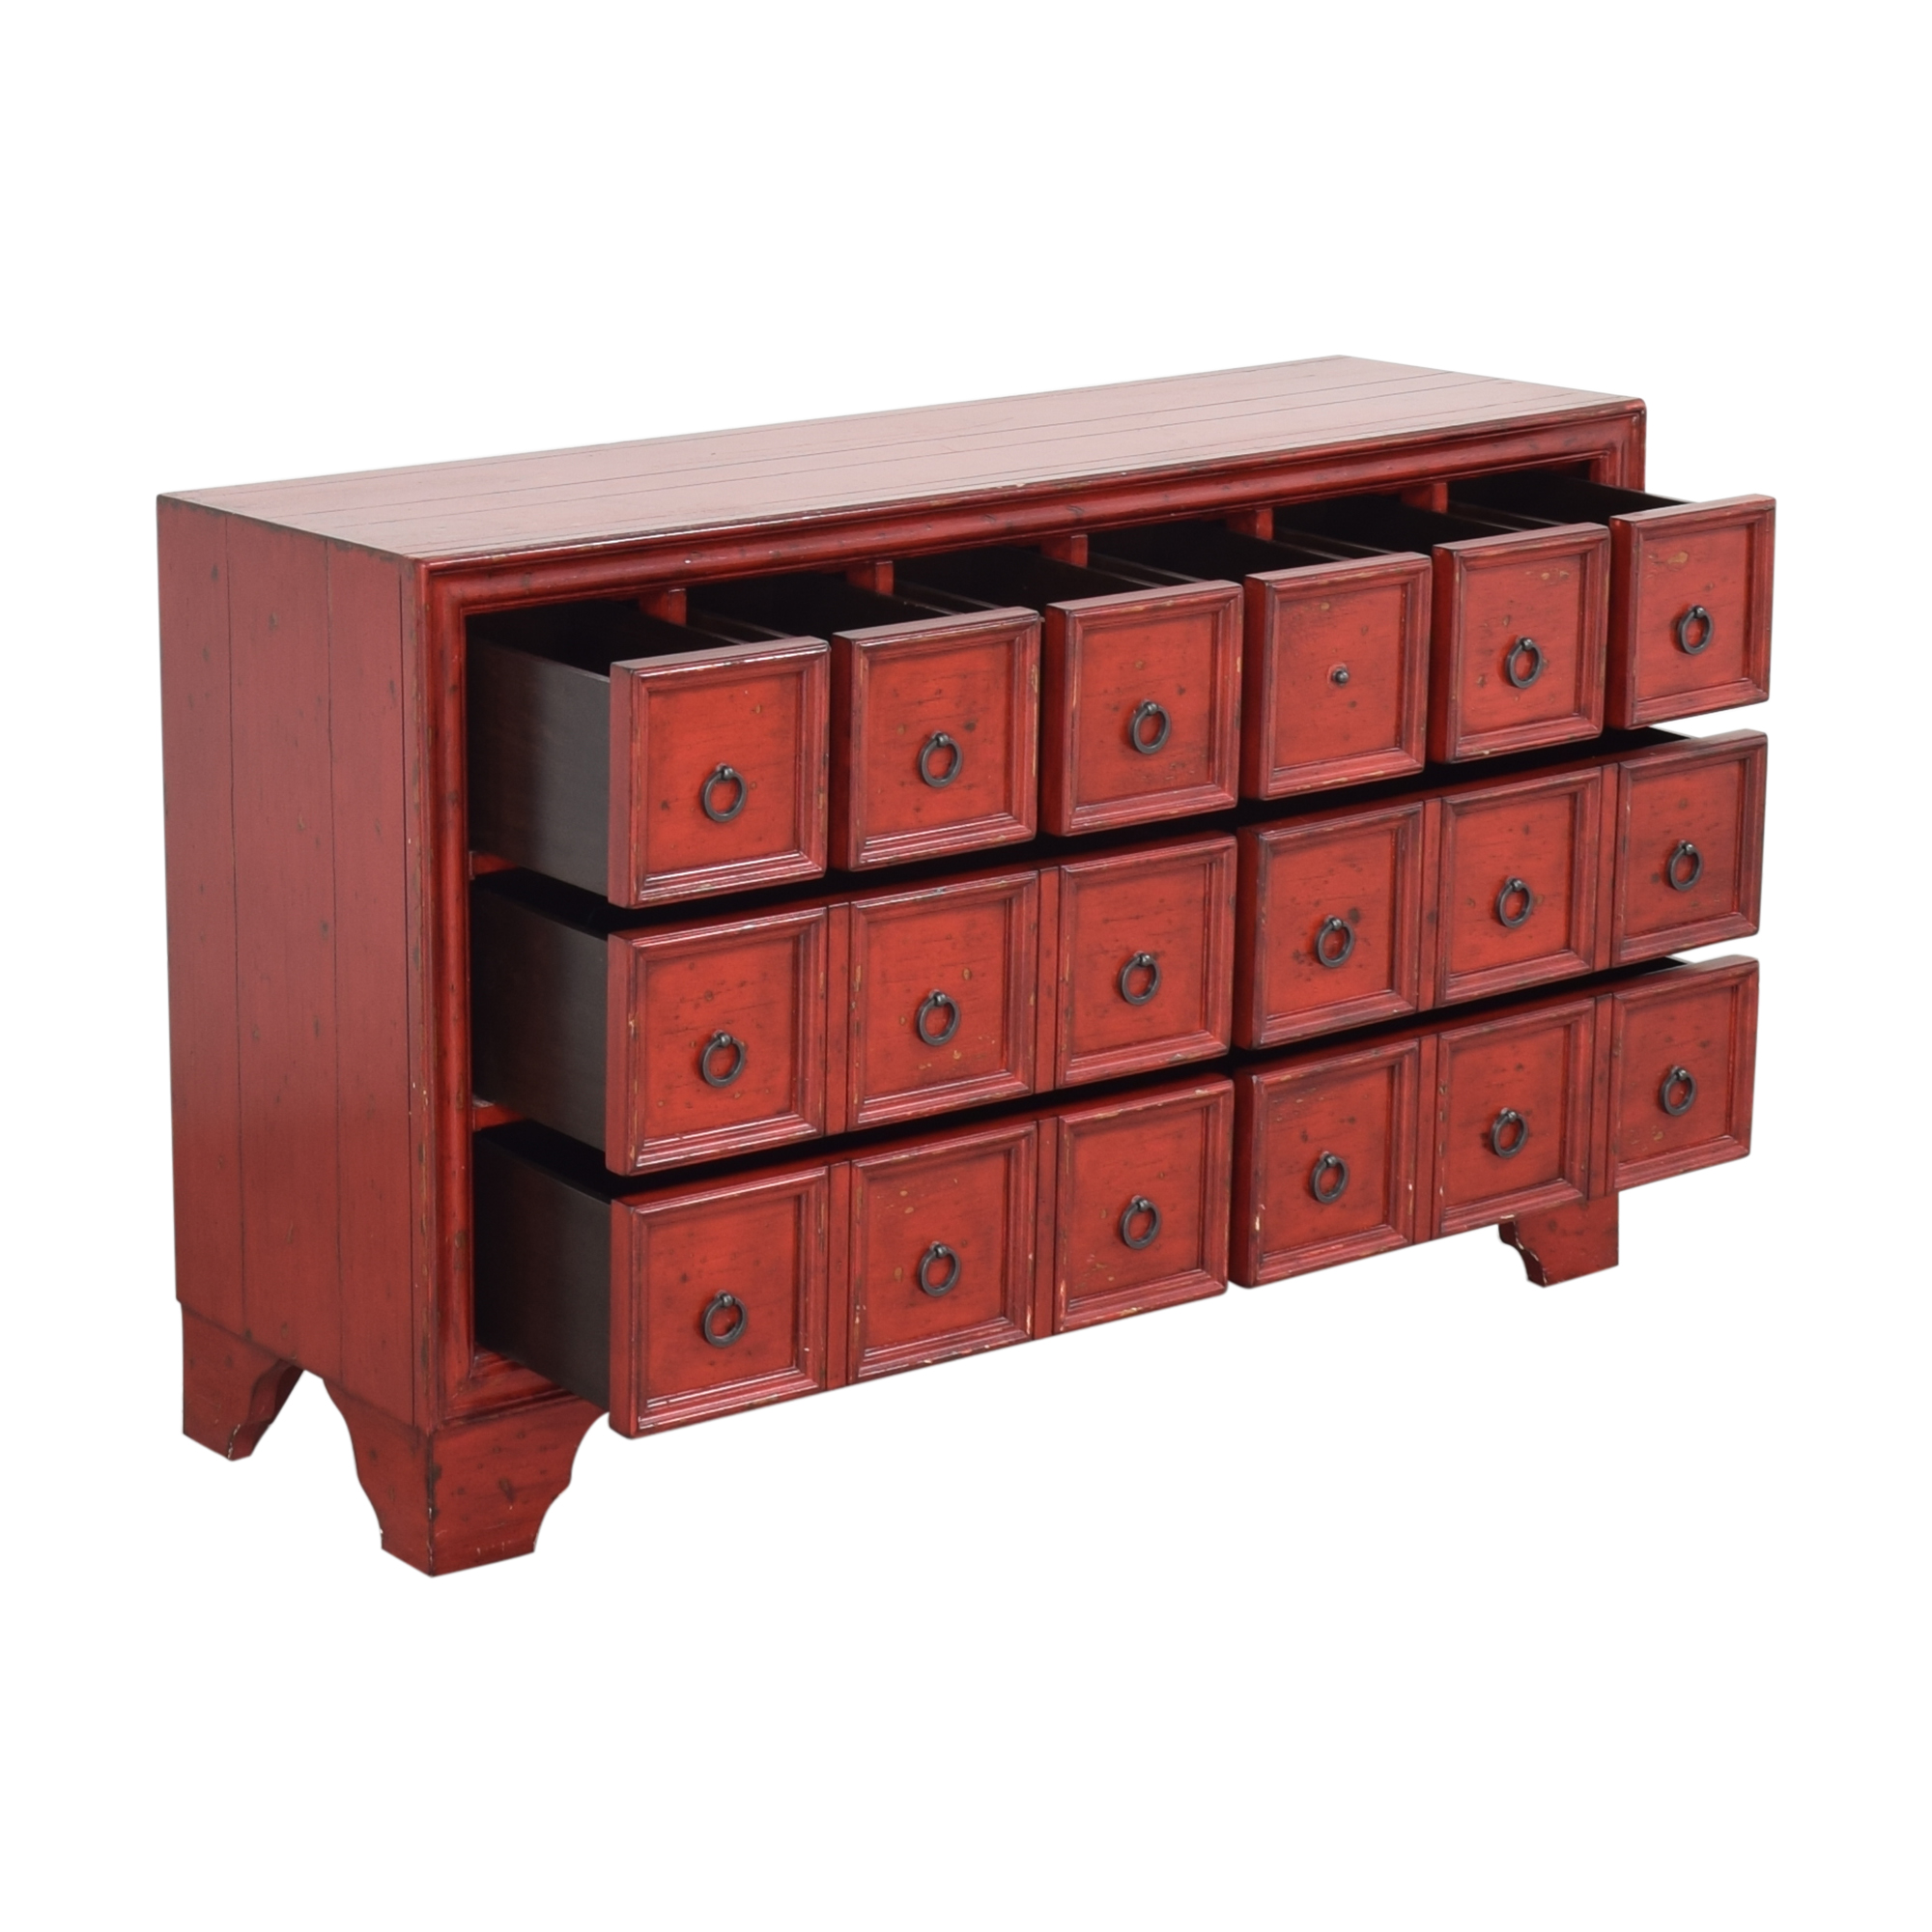 Pottery Barn Pottery Barn Apothecary Style Console Cabinets & Sideboards